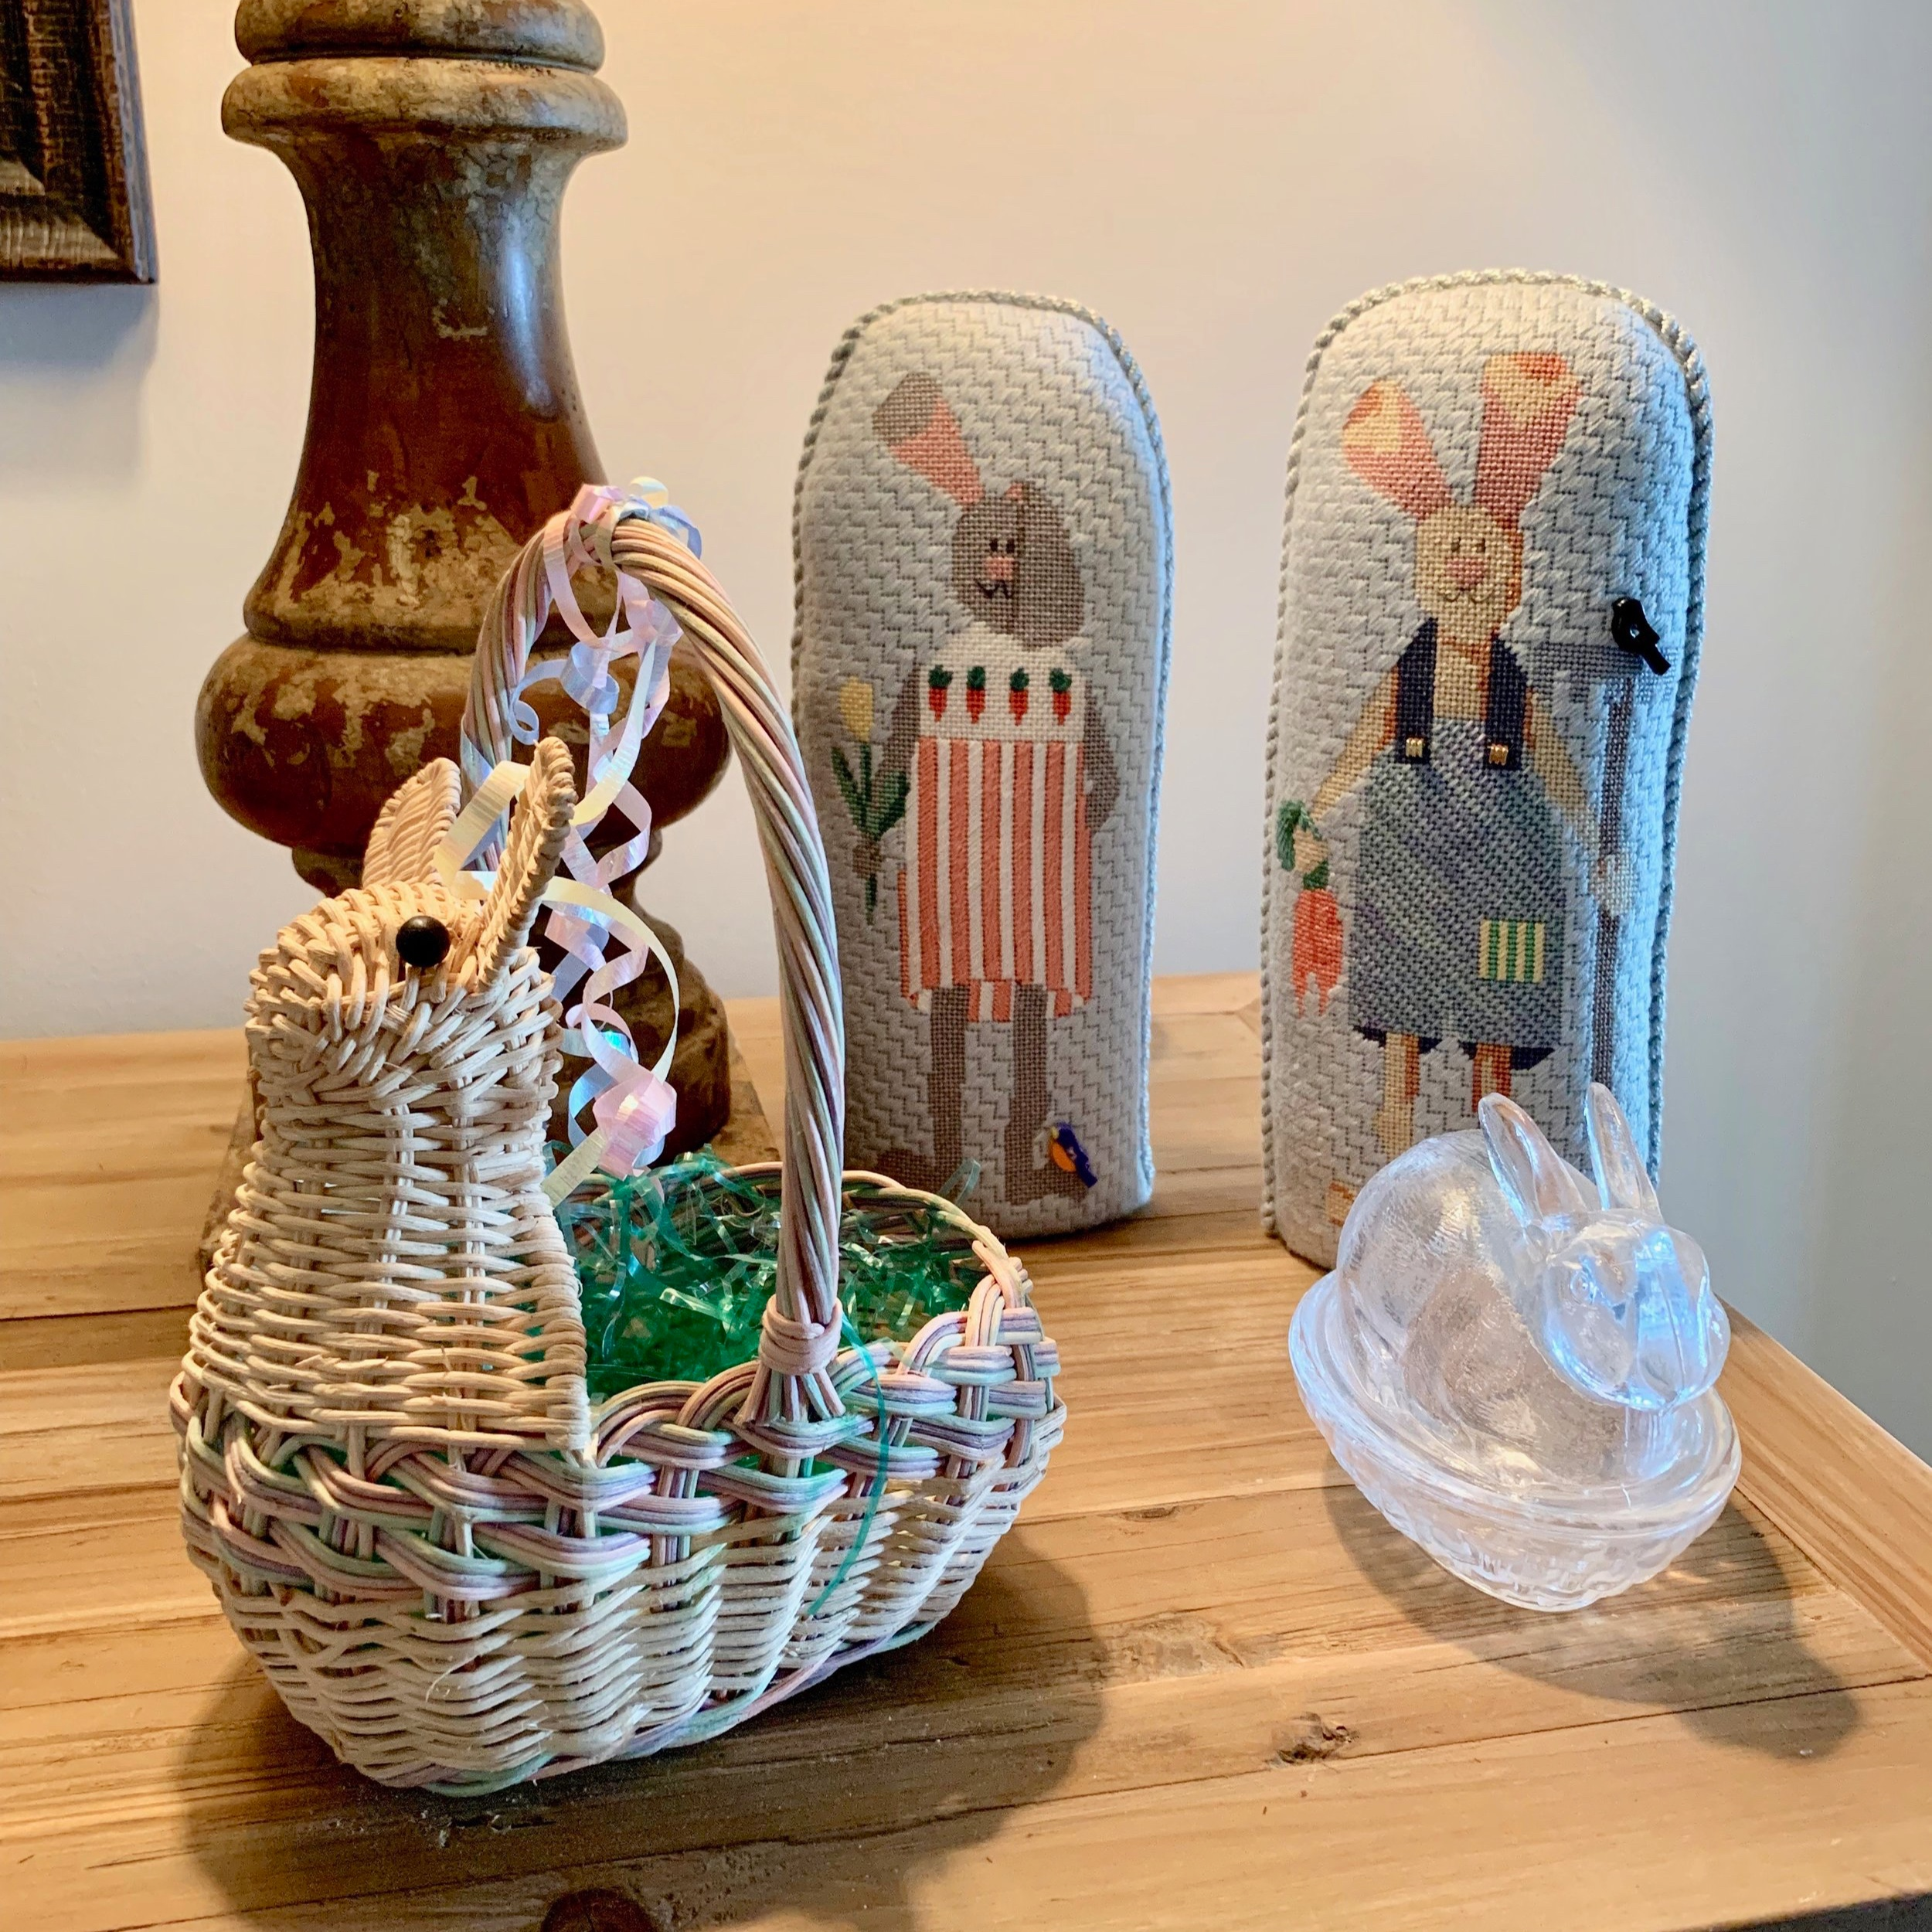 A small corner on a table with a few select items. I made those needlepoint bunnies years ago.